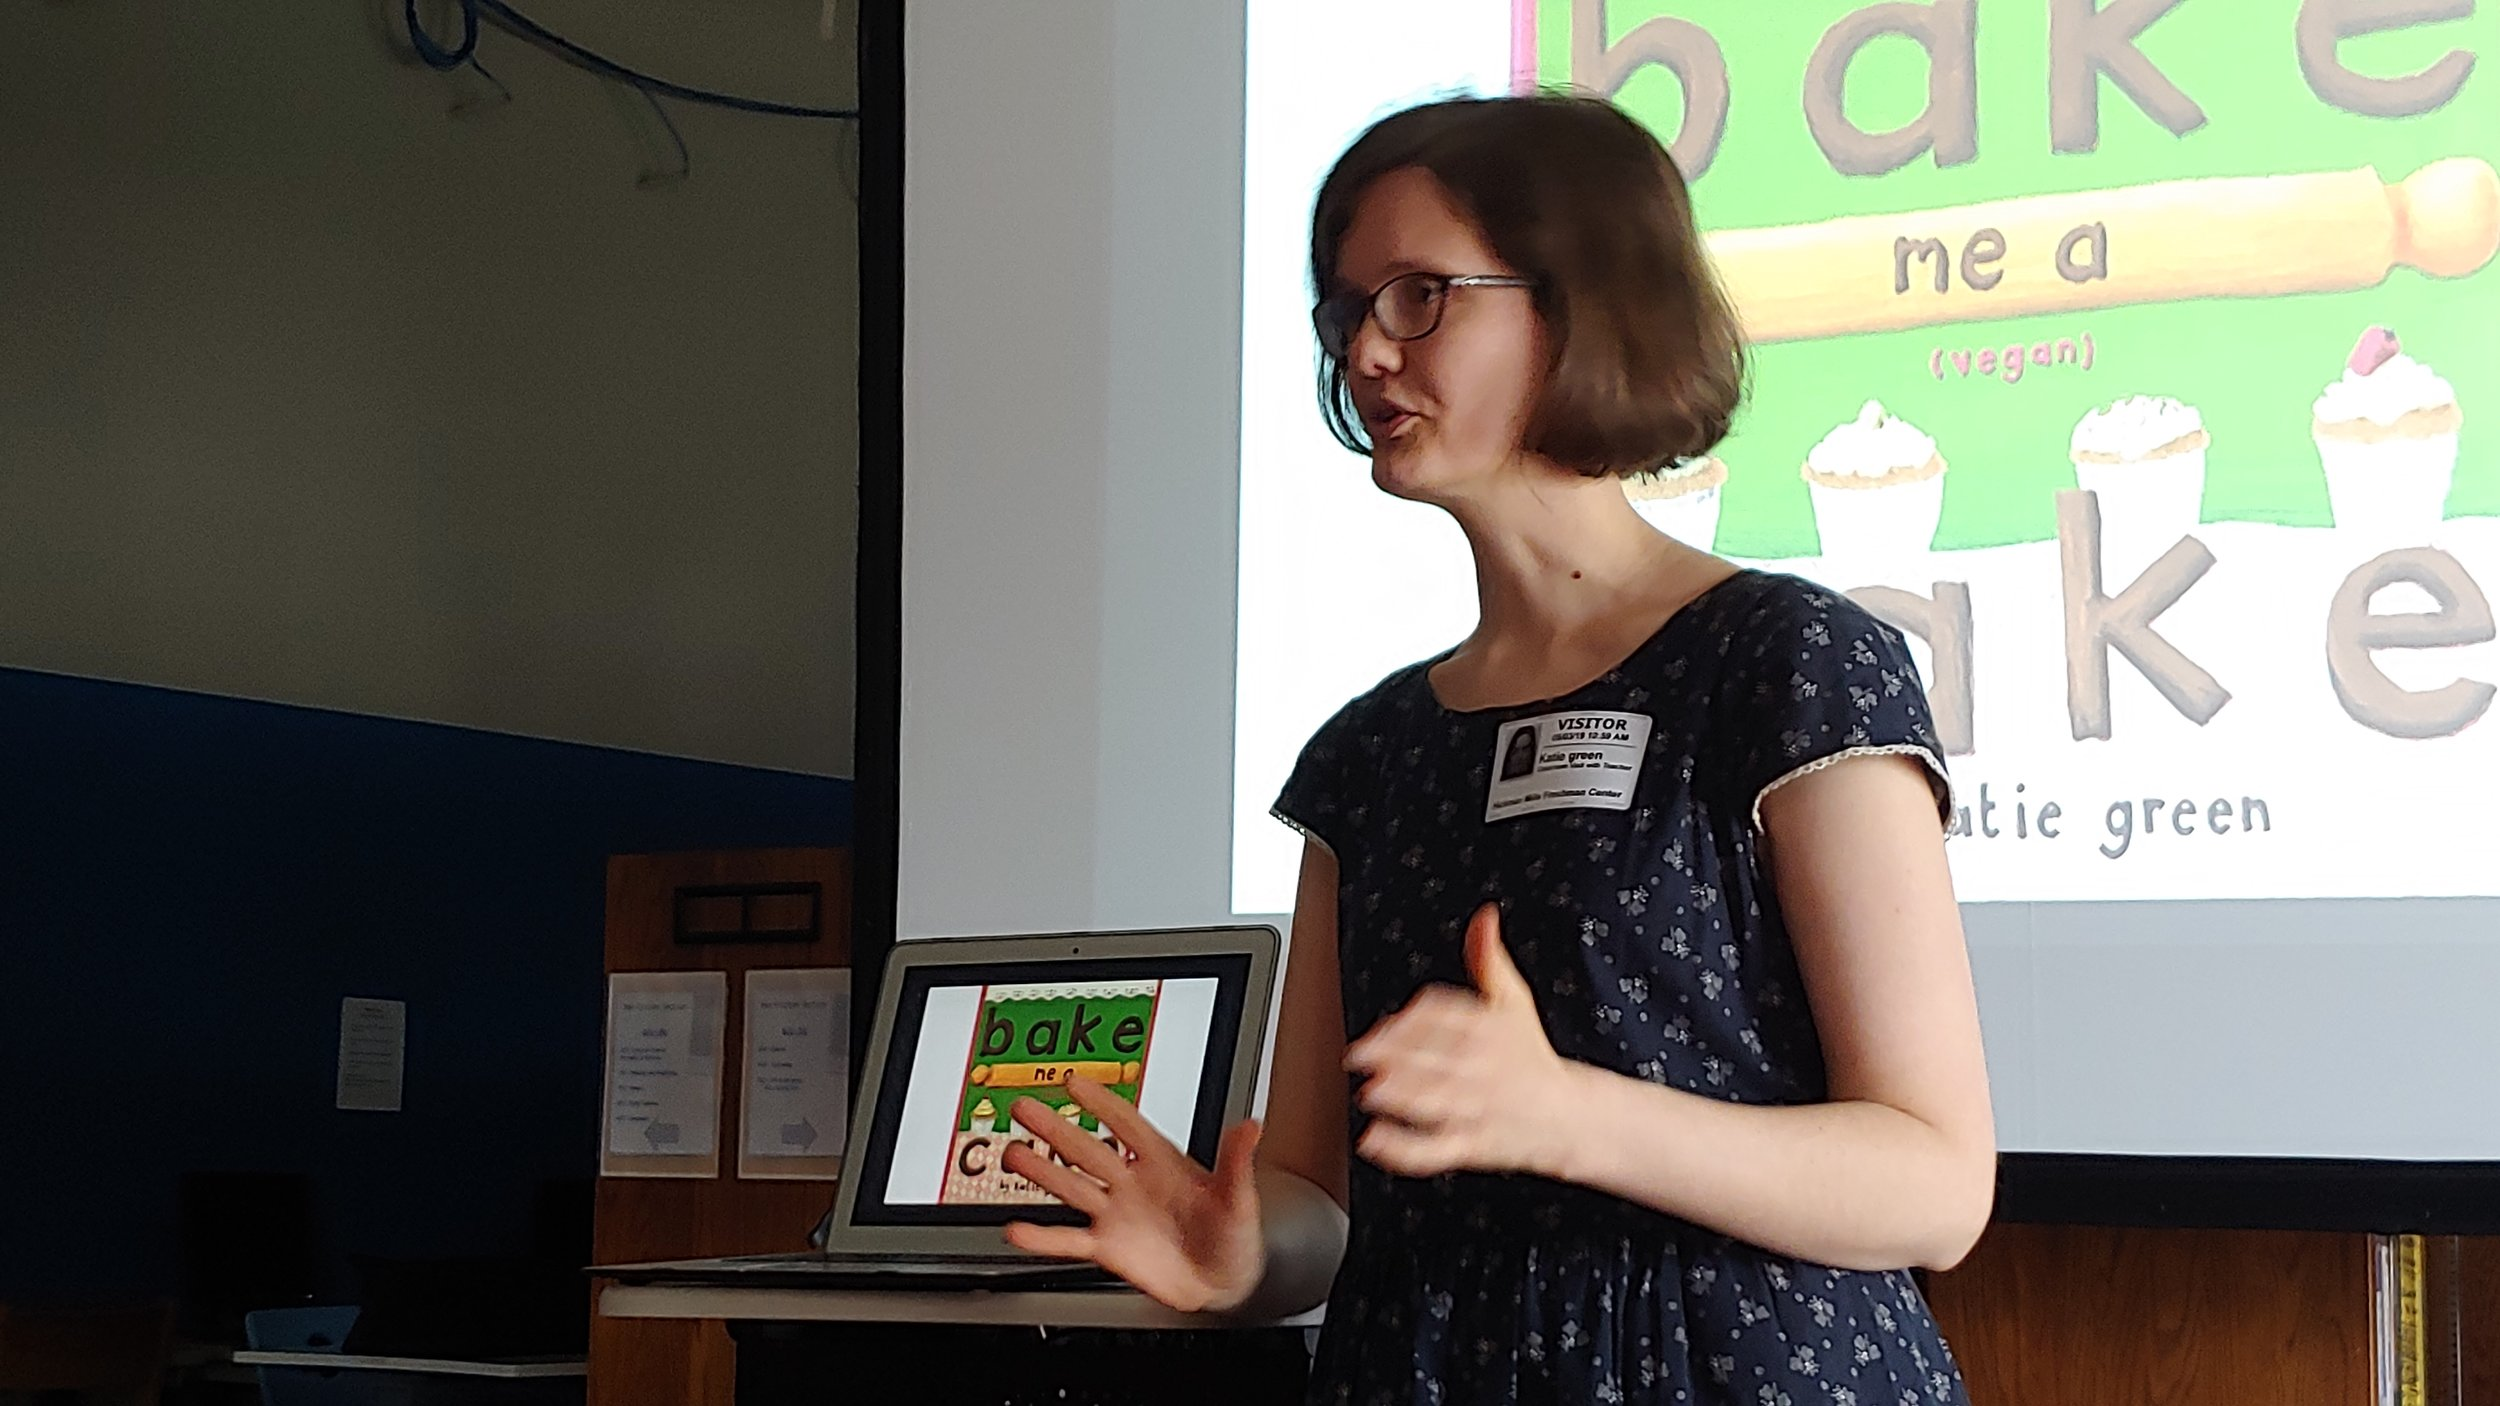 Author, illustrator, designer and podcaster Katie Green from the United Kingdom speaks to students at the Hickman Mills School District Freshman Center.